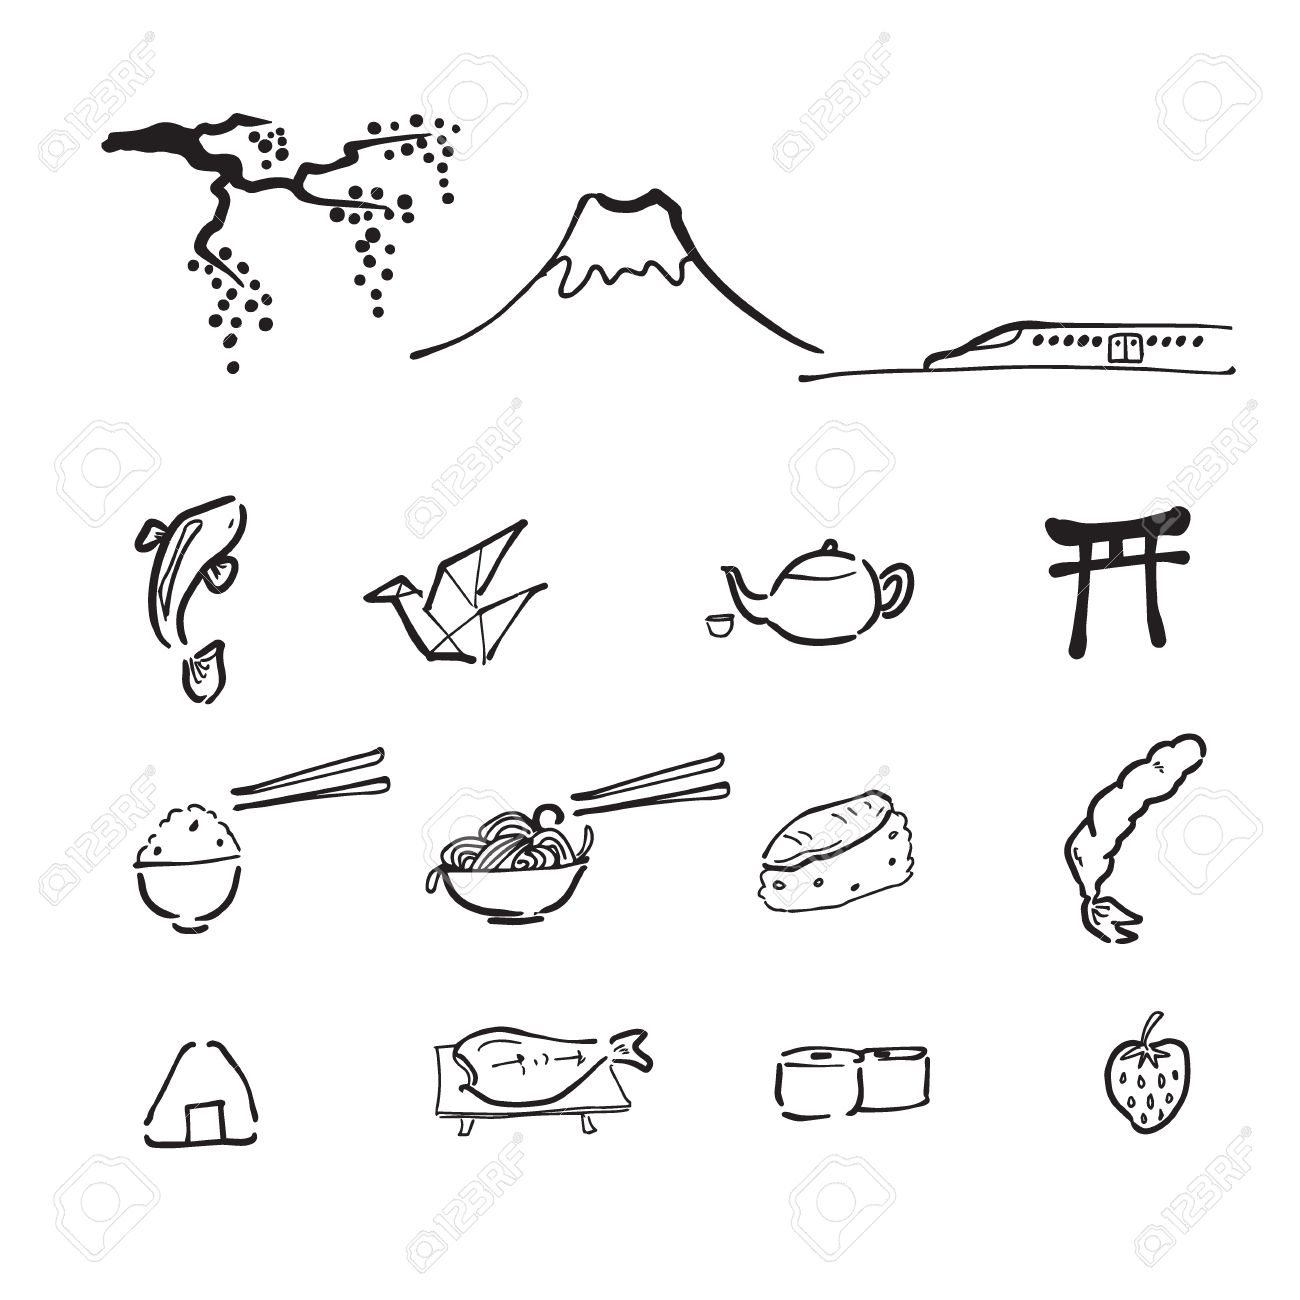 japan travel drawing doodle icons royalty free cliparts vectors